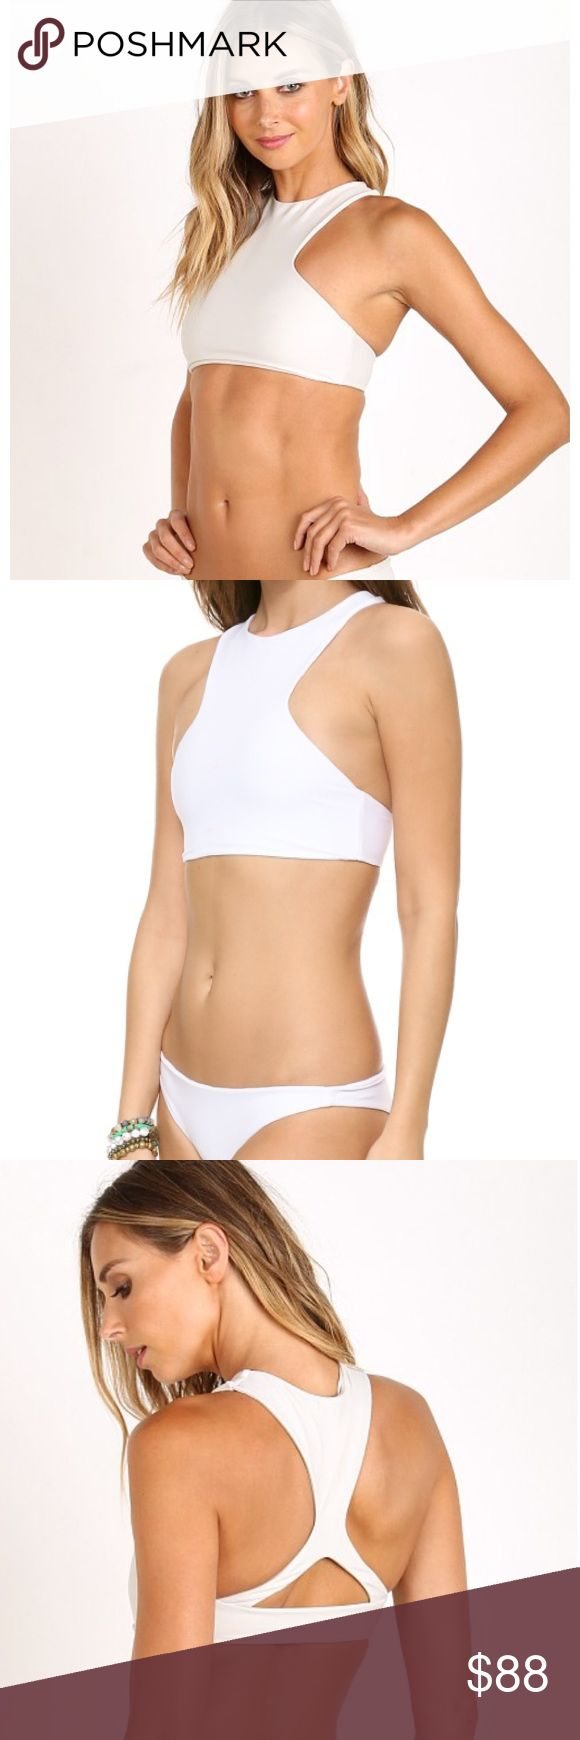 MIKOH Barbados Bikini Top & Bottom - Driftwood NEW This is a Classic swimsuit you will have for years!! A high neckline gives off a sporty vibe with a triangle cut out on racer back in Mikoh's signature seamless fabric that's made to last season to season. Fully lined. Driftwood - cream off white color. Fabric: 80% Nylon 20% Spandex. Small top but fits more like an XS & Medium bottom but fits like a Small. This is NEW! The top has a stain & bottom has a small imperfection - please see…